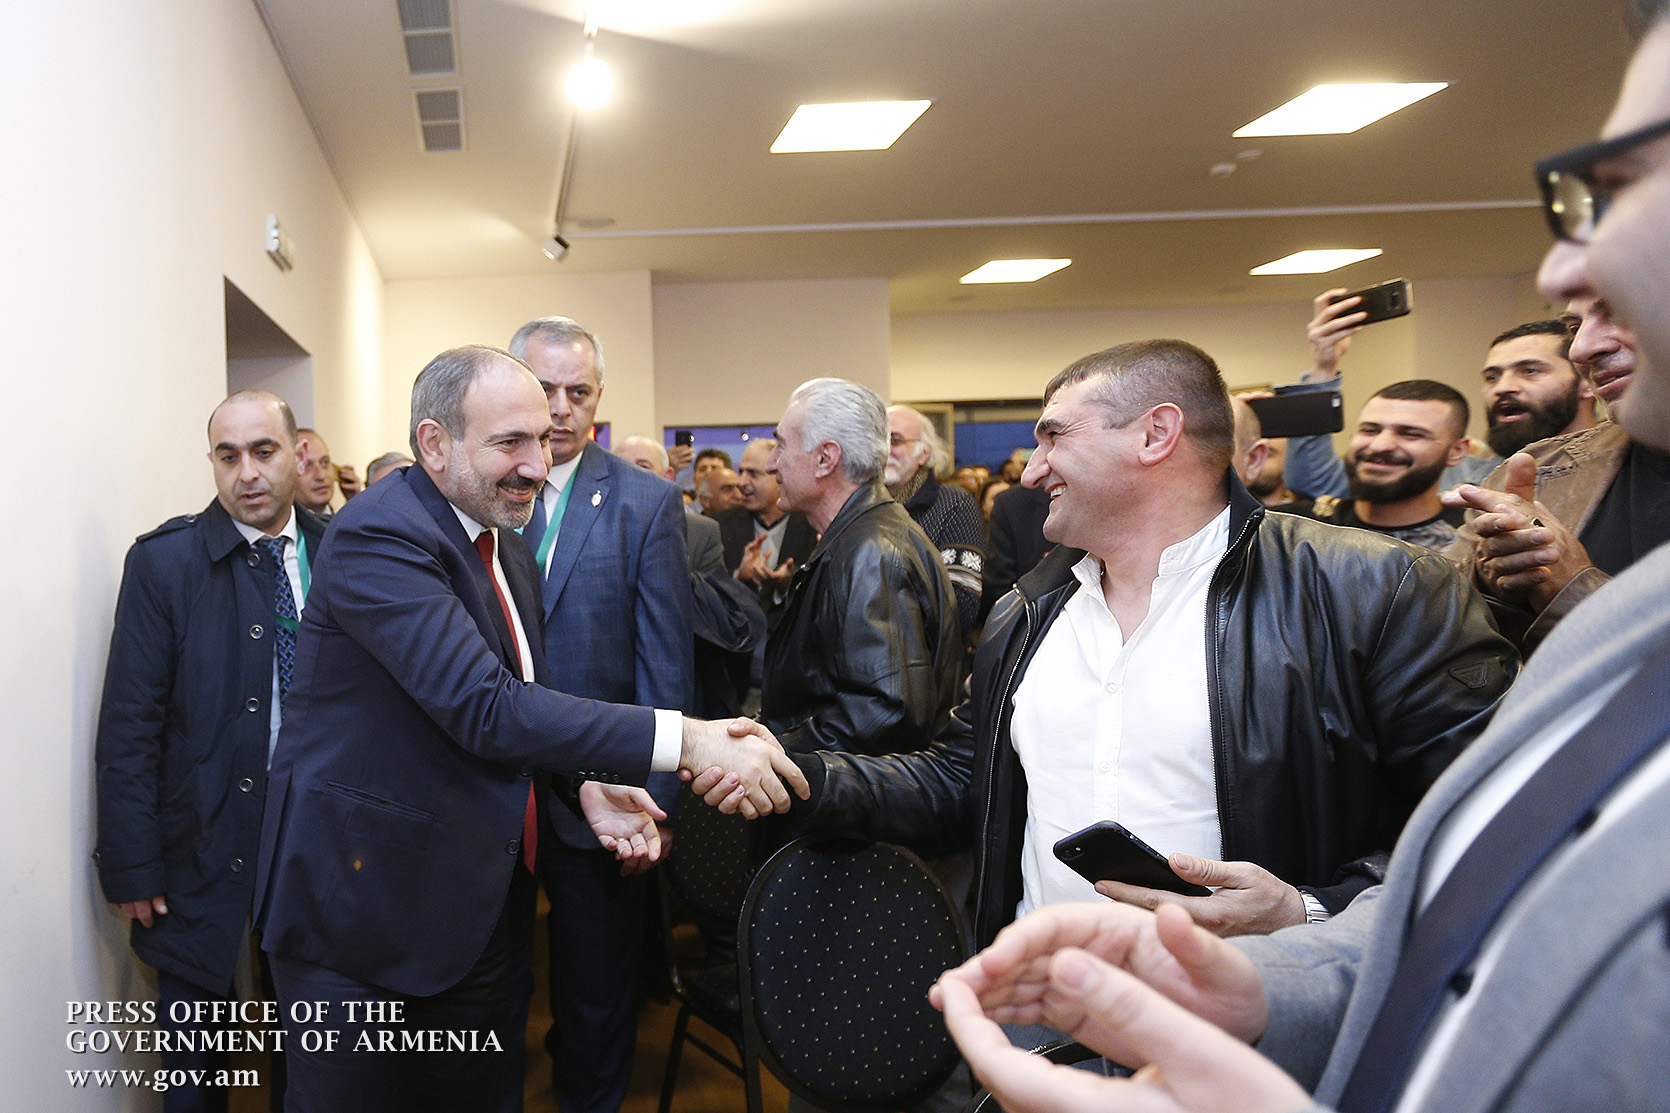 PM meets with Armenian community representatives in Vienna